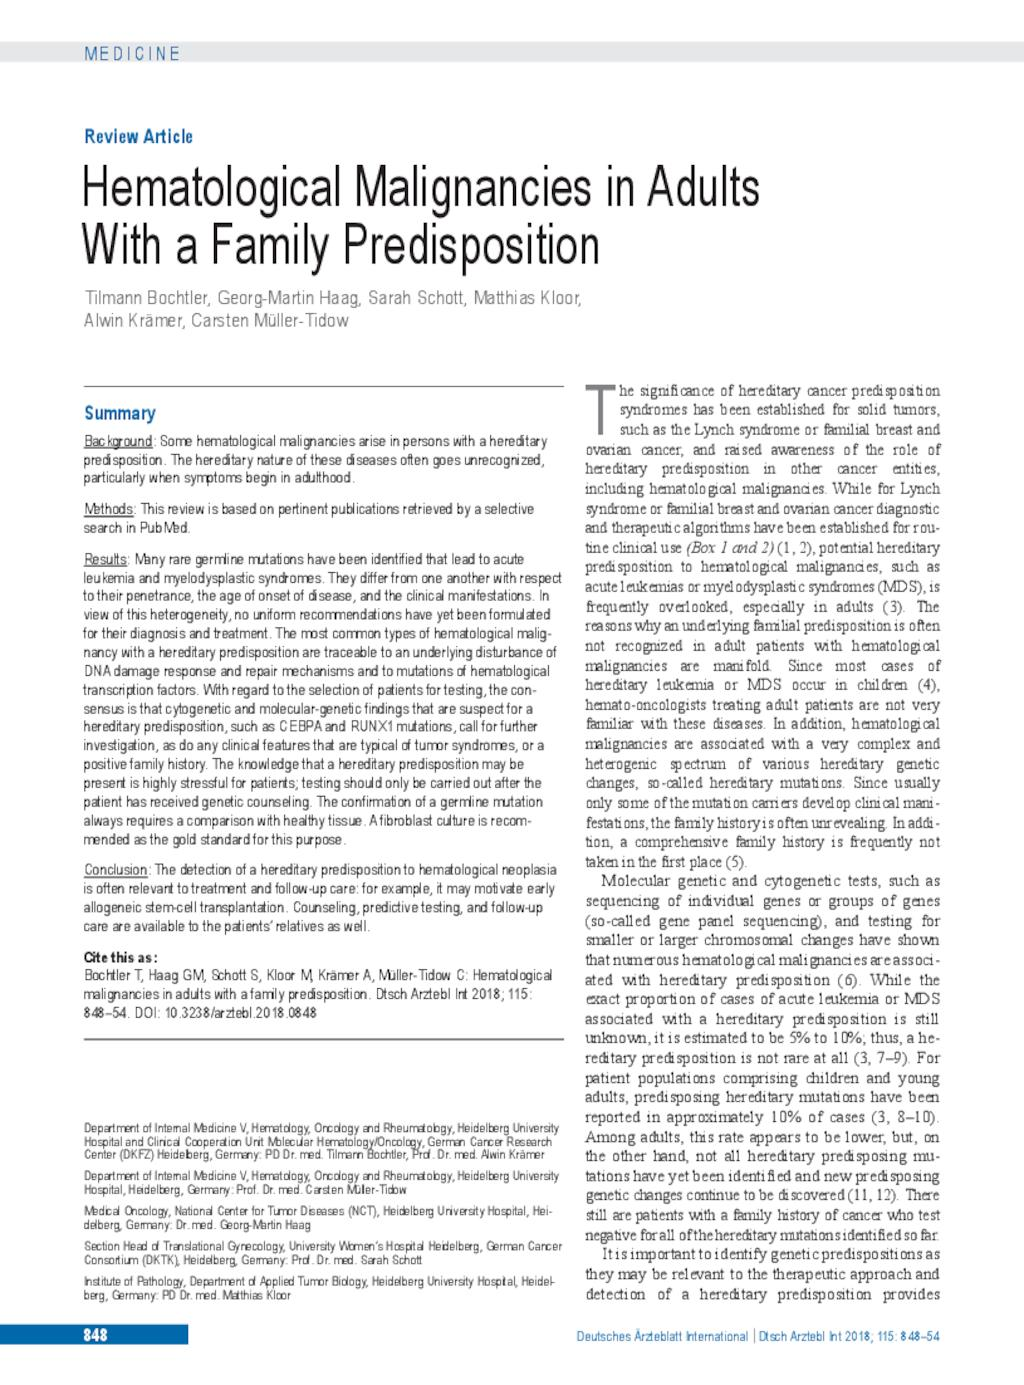 Hematological Malignancies in Adults With a Family